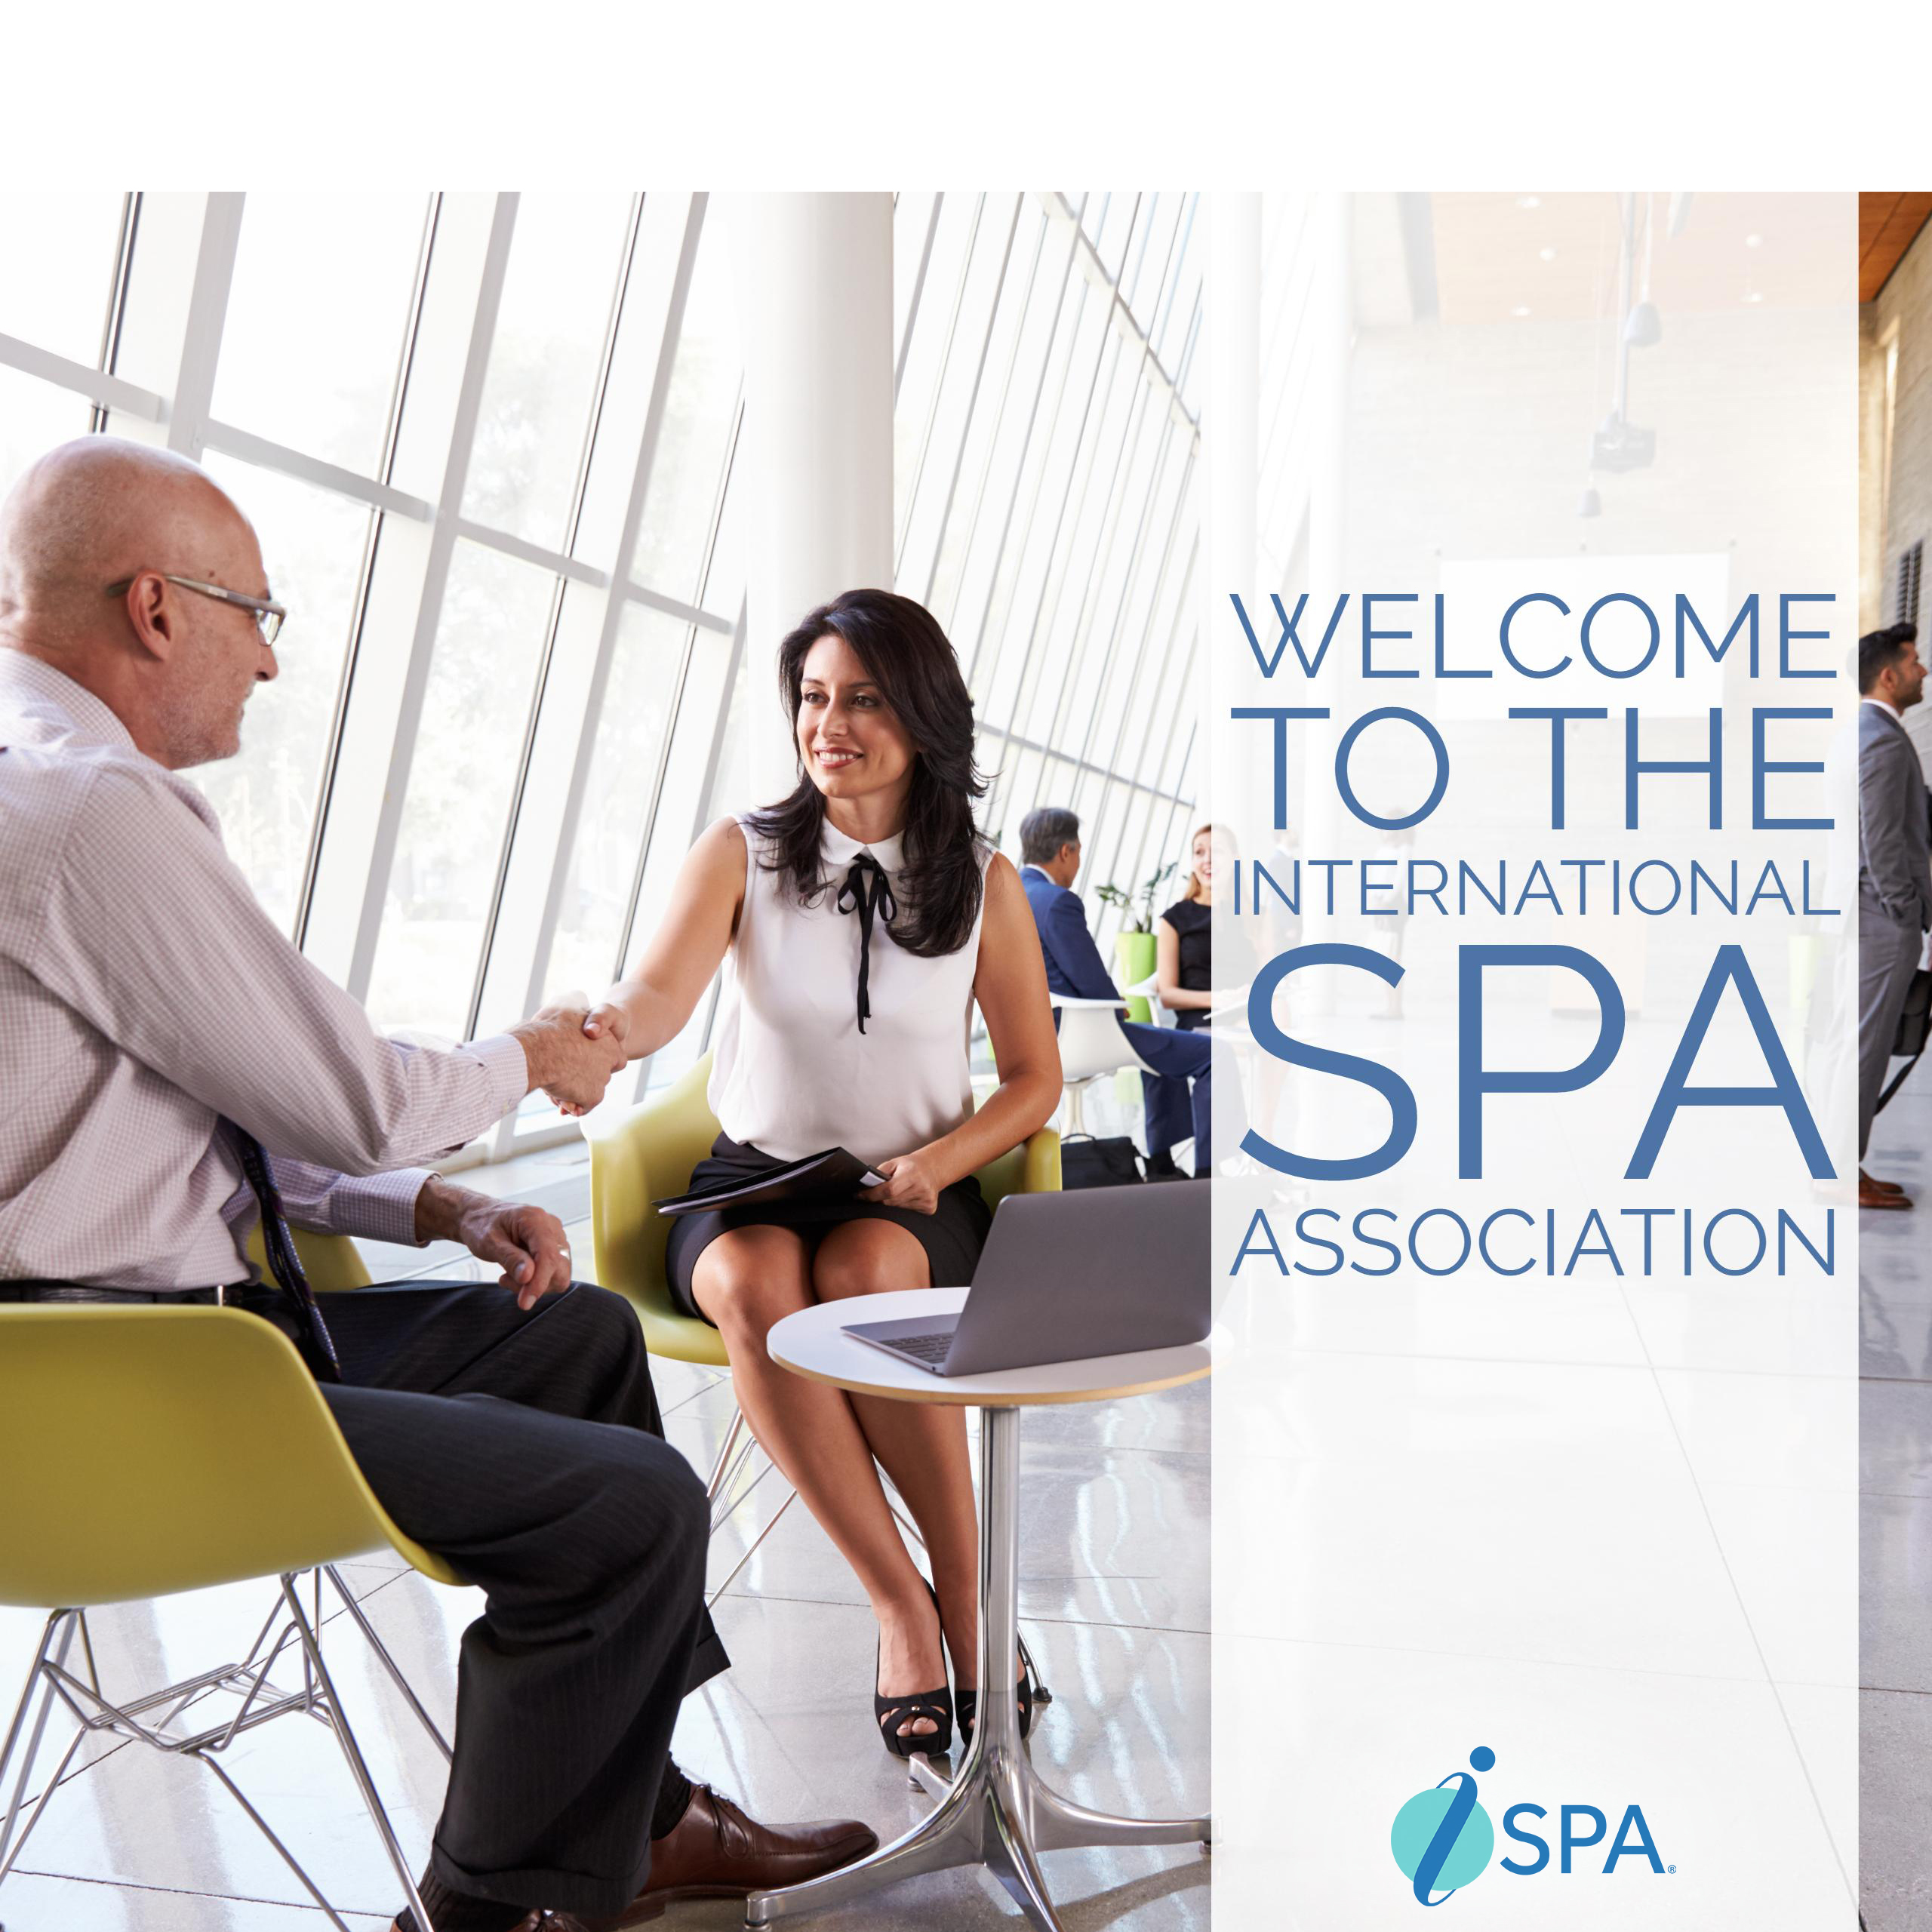 Welcome to the International SPA Association